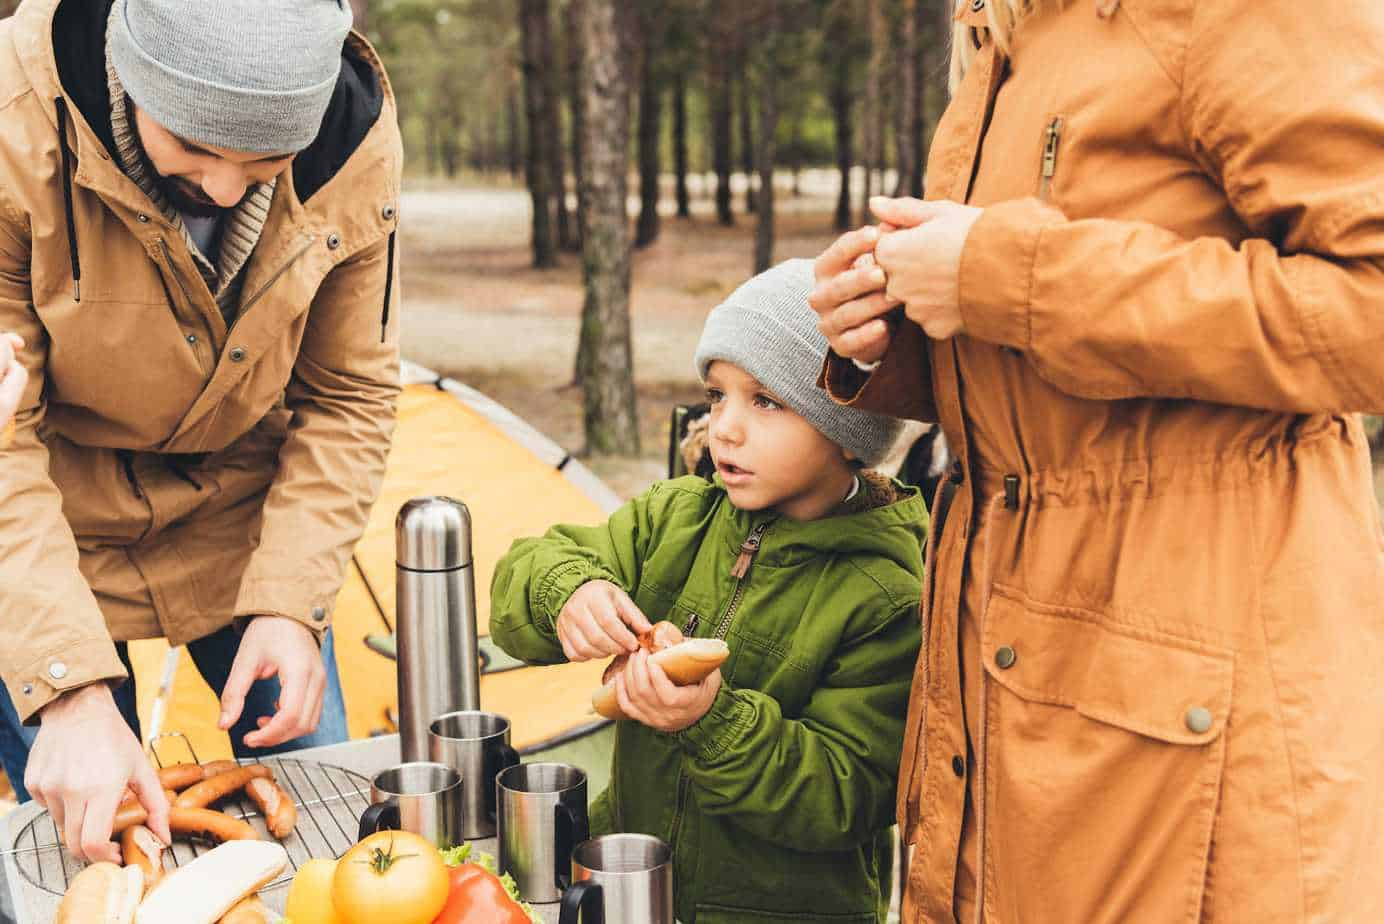 It's camping season, which means it's time to look into for new meals outside the same 'ol hot dogs and hamburgers. Easy to make camping meals.